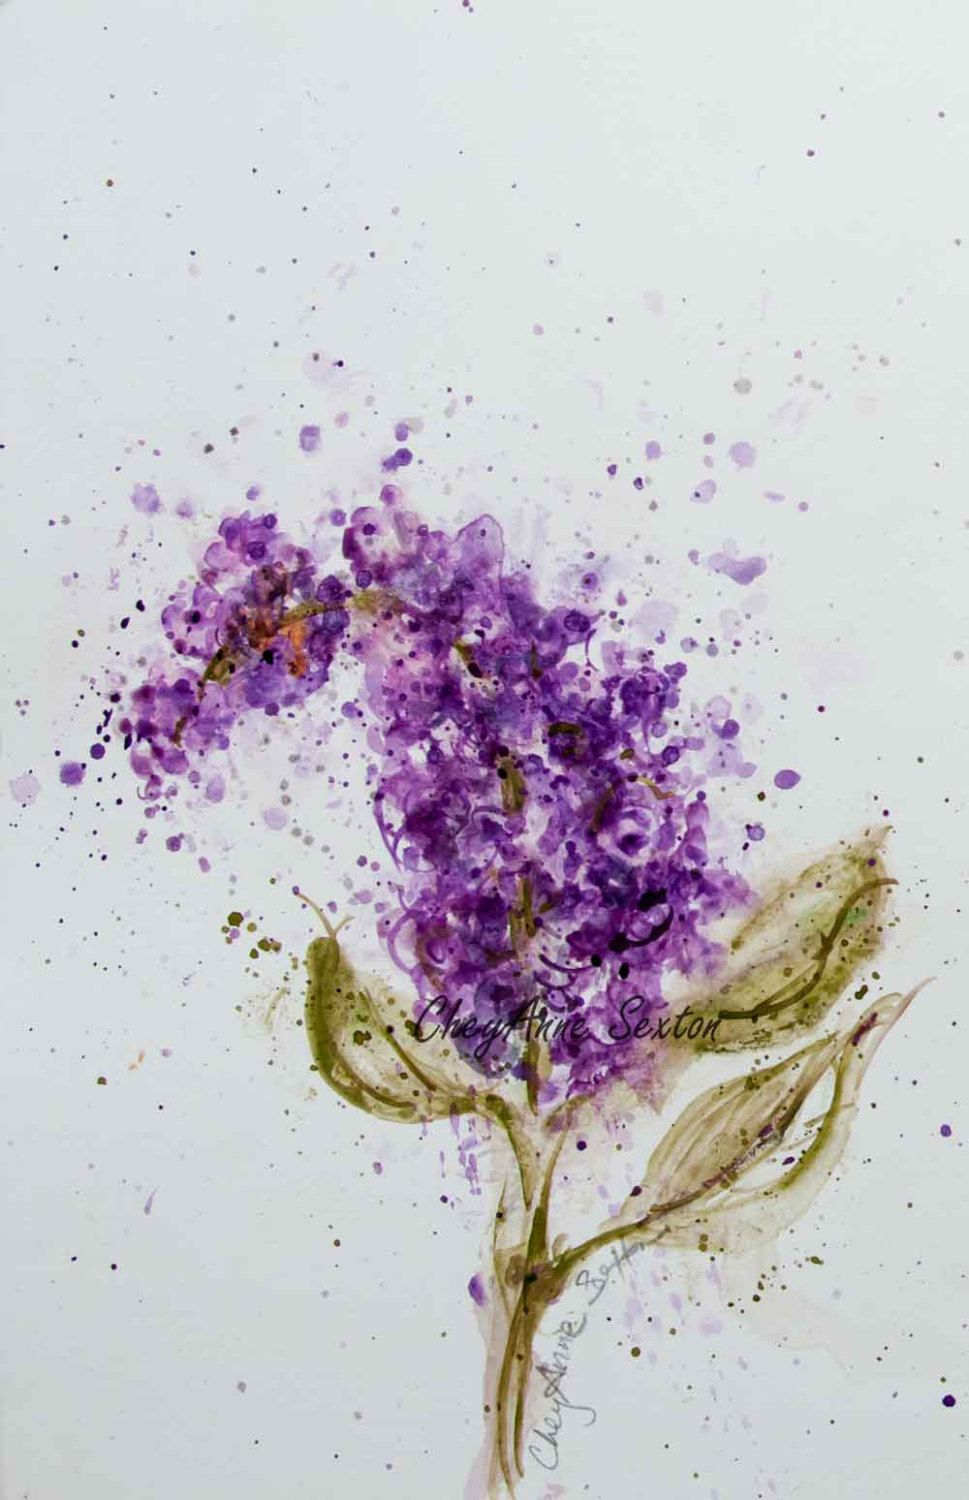 Single Purple Lilac Watercolor Blossom Flower Art Giclee Print 8x12 Art Gift Watercolour By Cheyanne In 2020 Watercolor Flowers Flower Art Watercolor Tattoo Flower